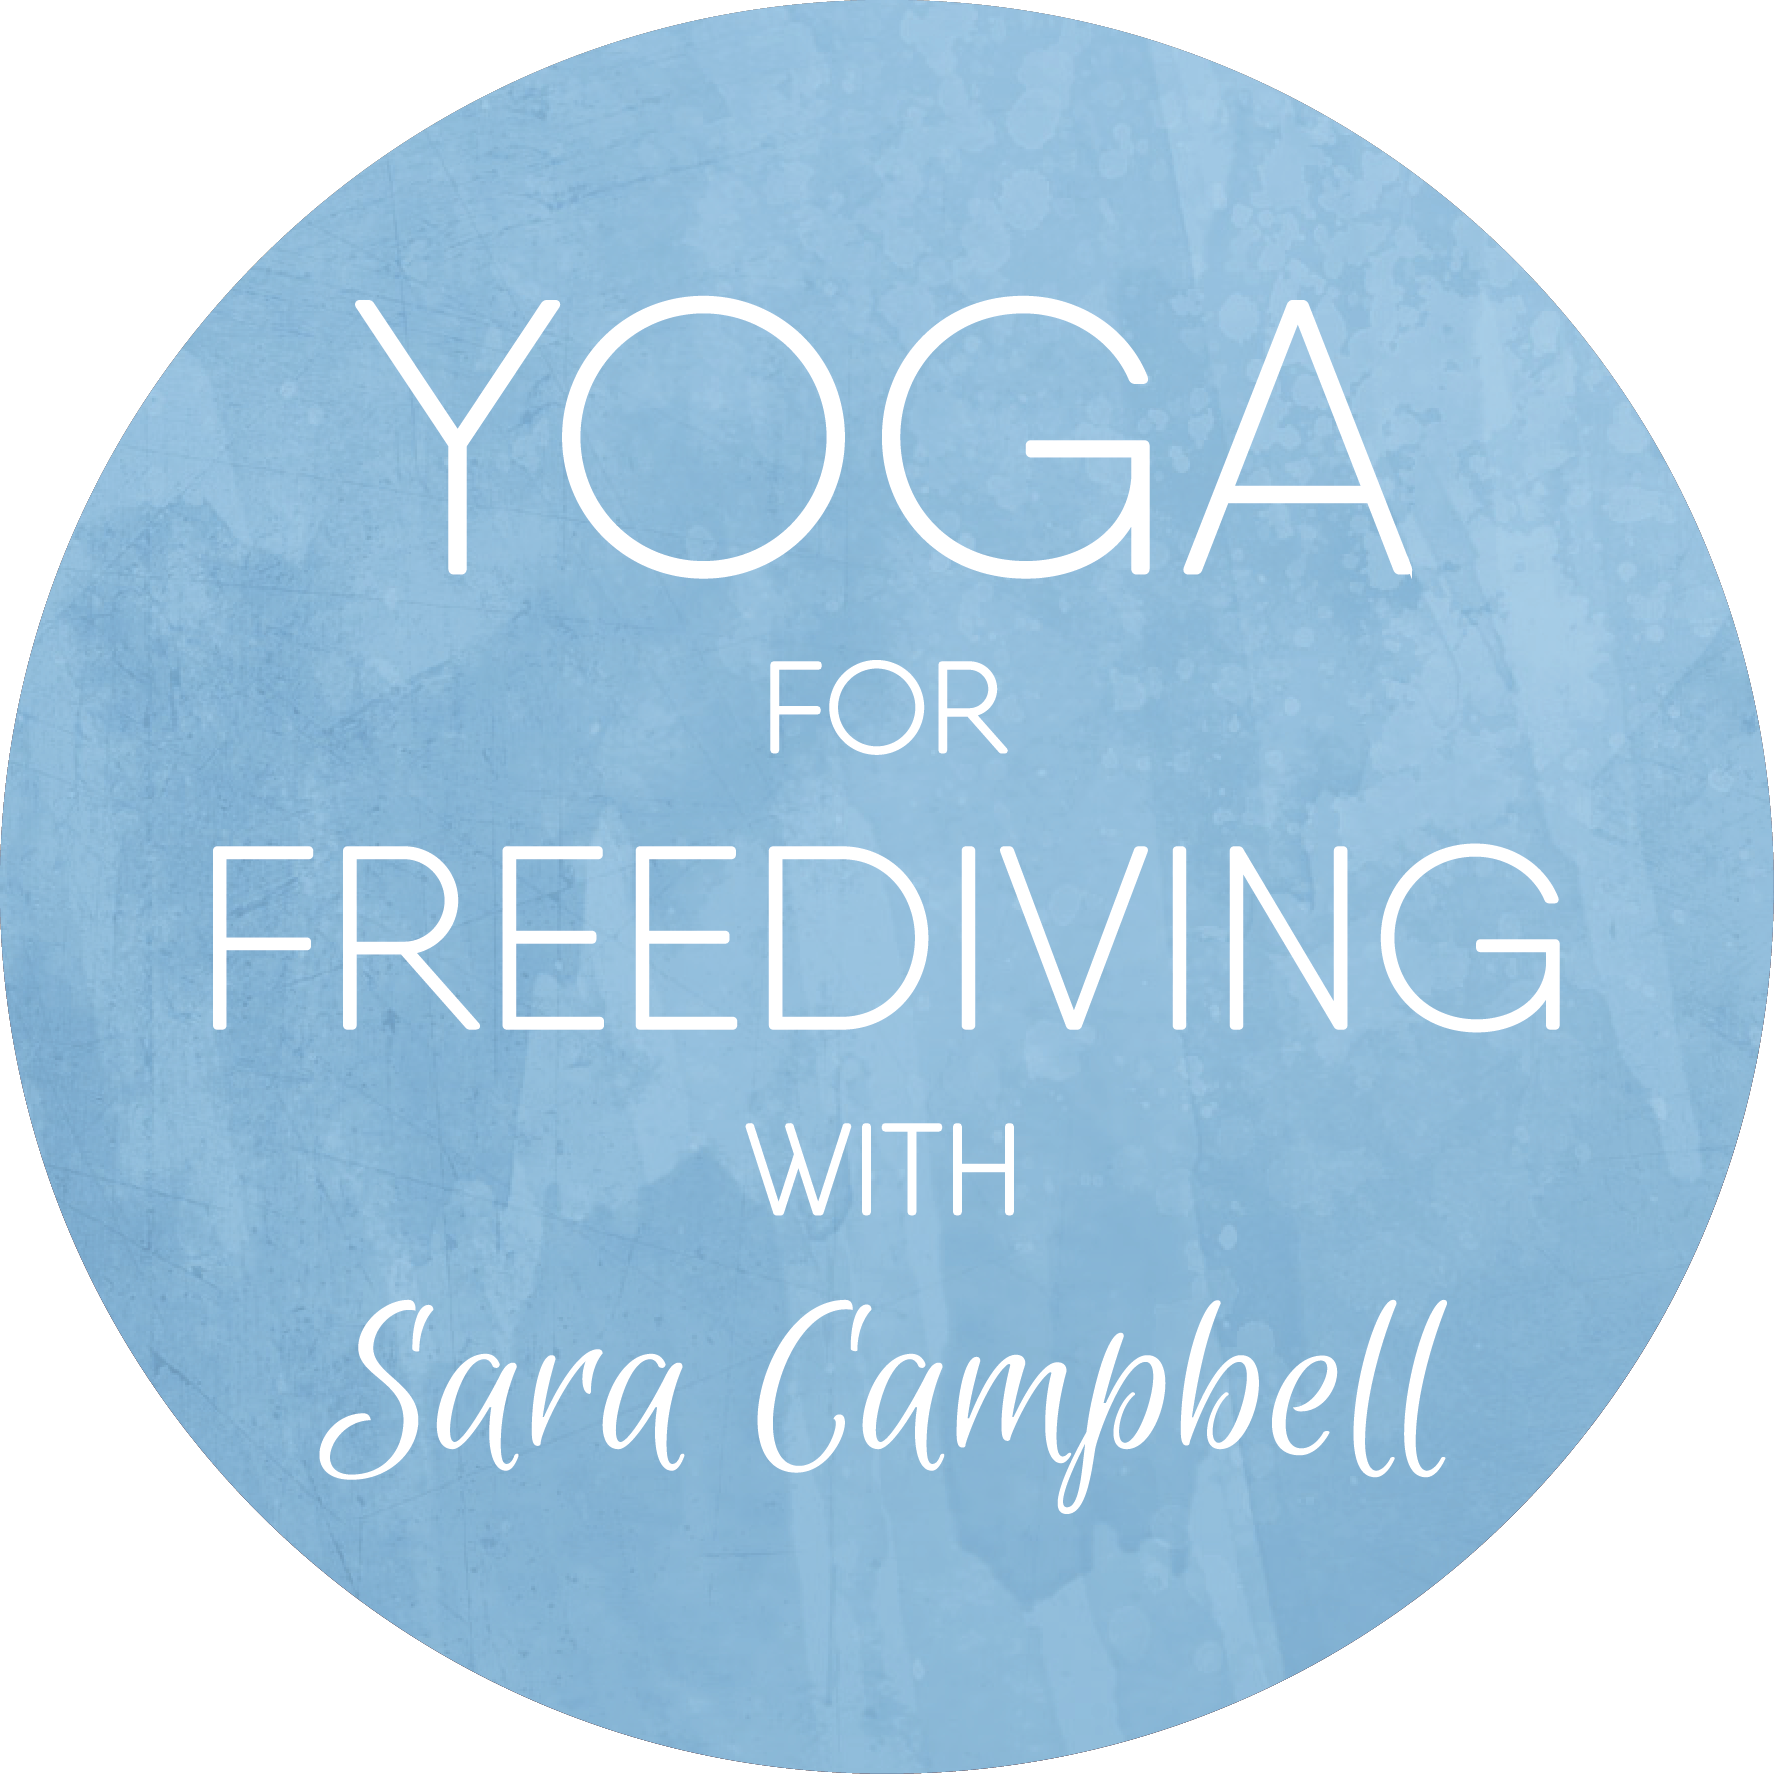 'Yoga For Freediving' is a series of online yoga courses by Sara Campbell